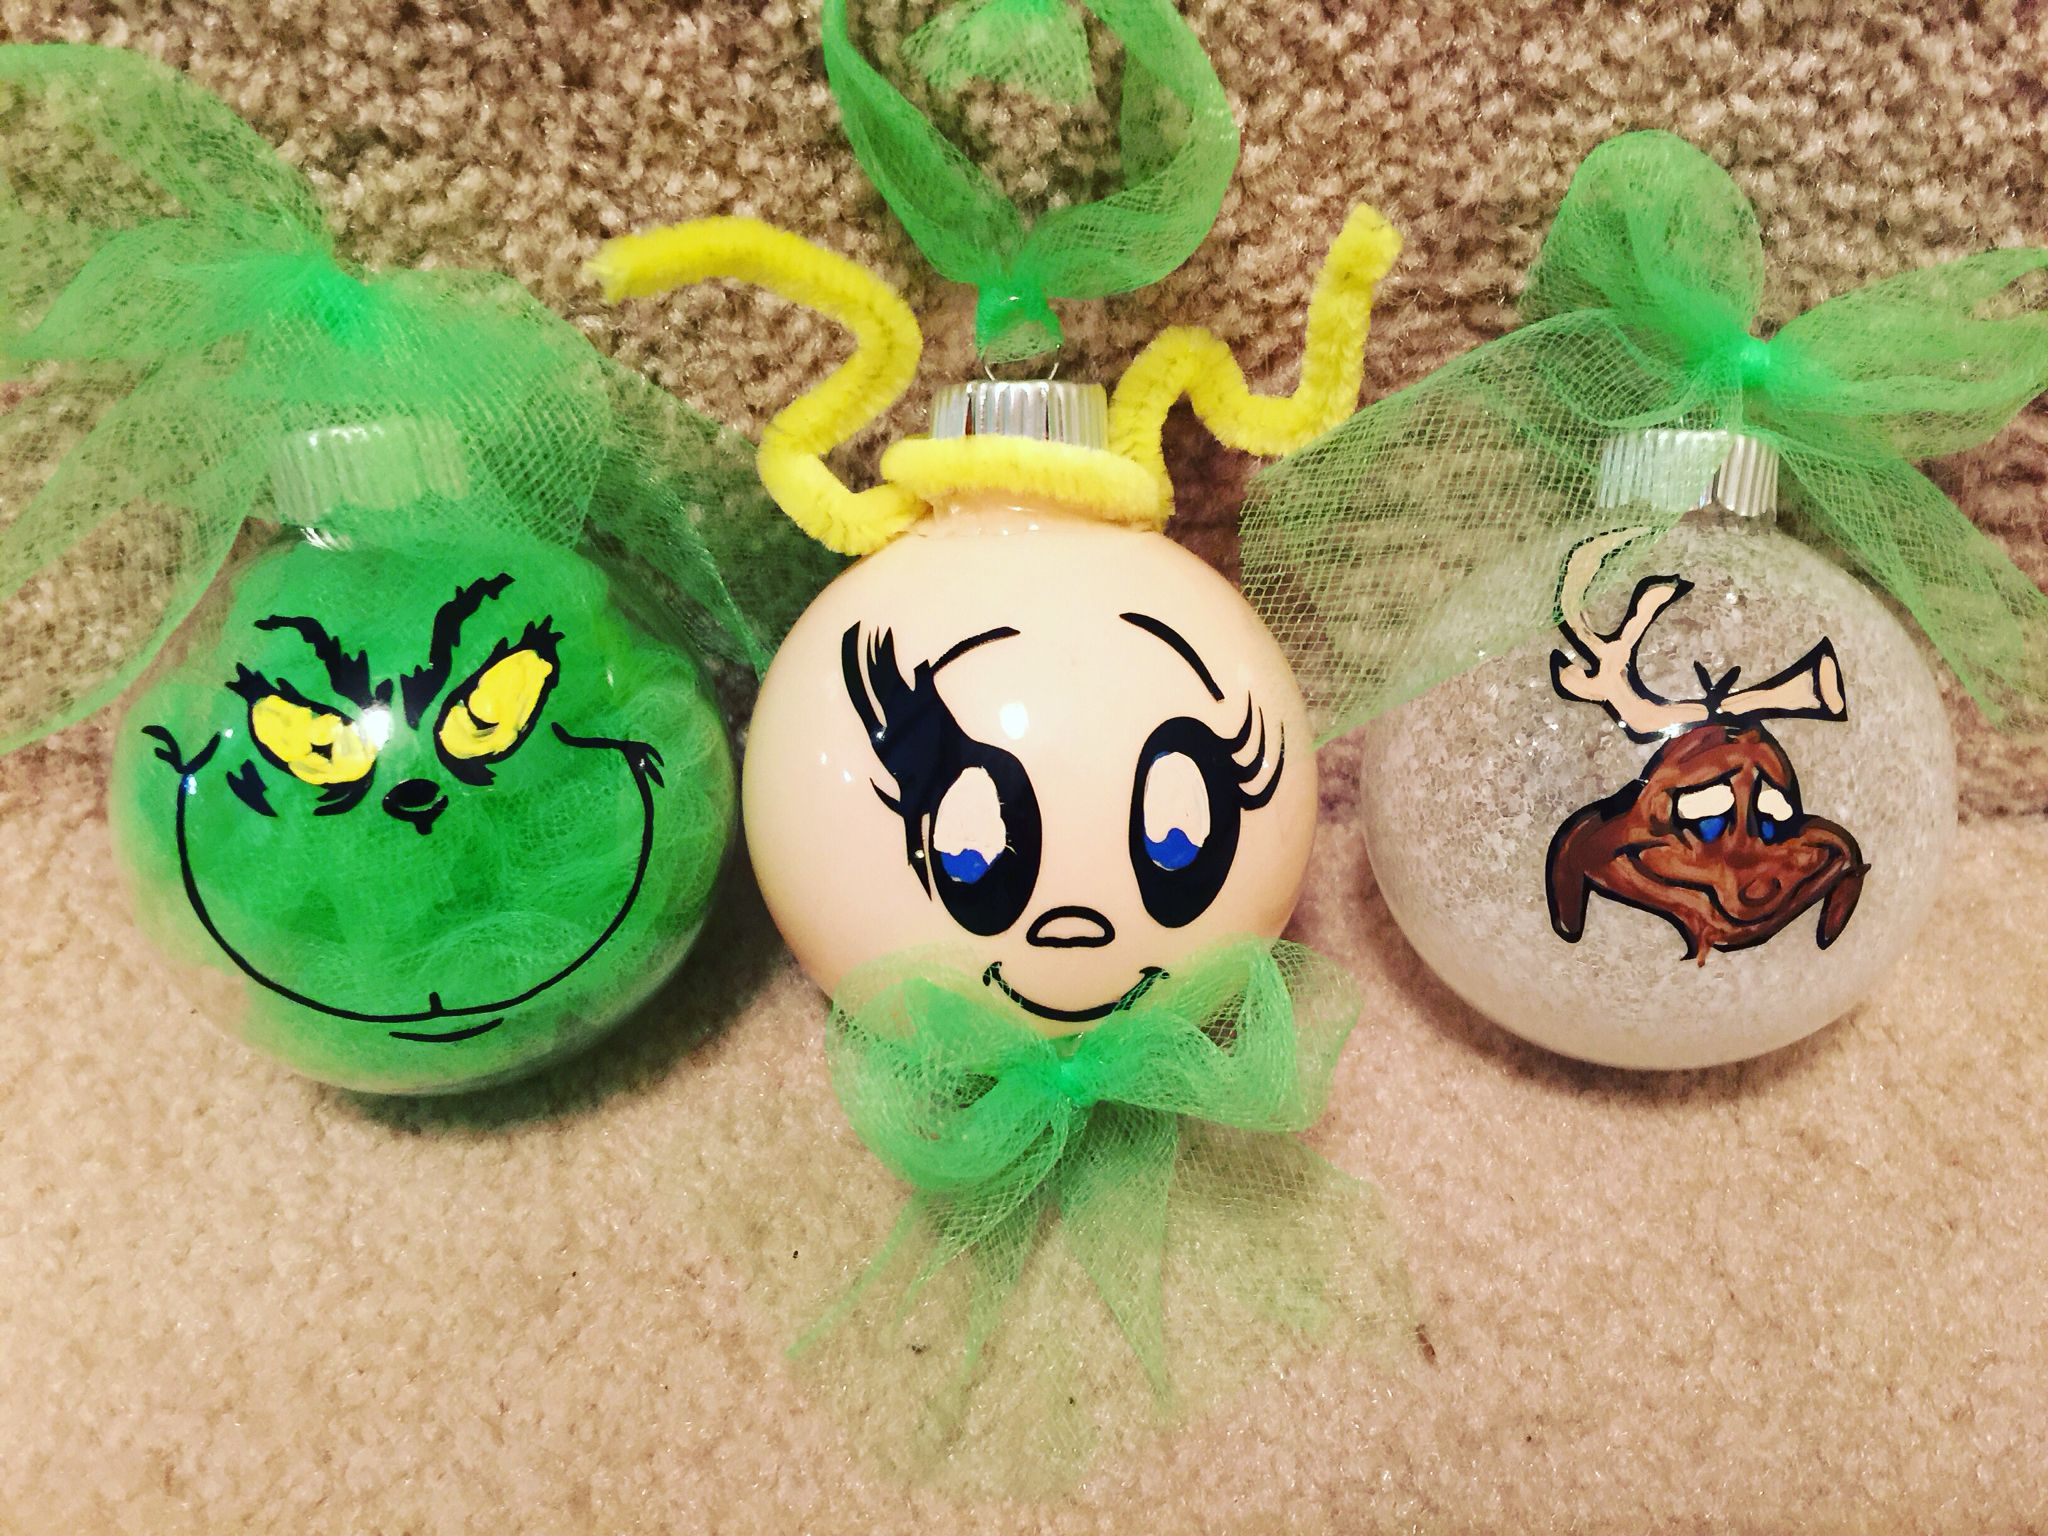 I Made These Grinch Character Ornaments With My Cricut Some Vinyl And A Little Paint Christmas Tree Themes Christmas Ornaments Snowman Tree